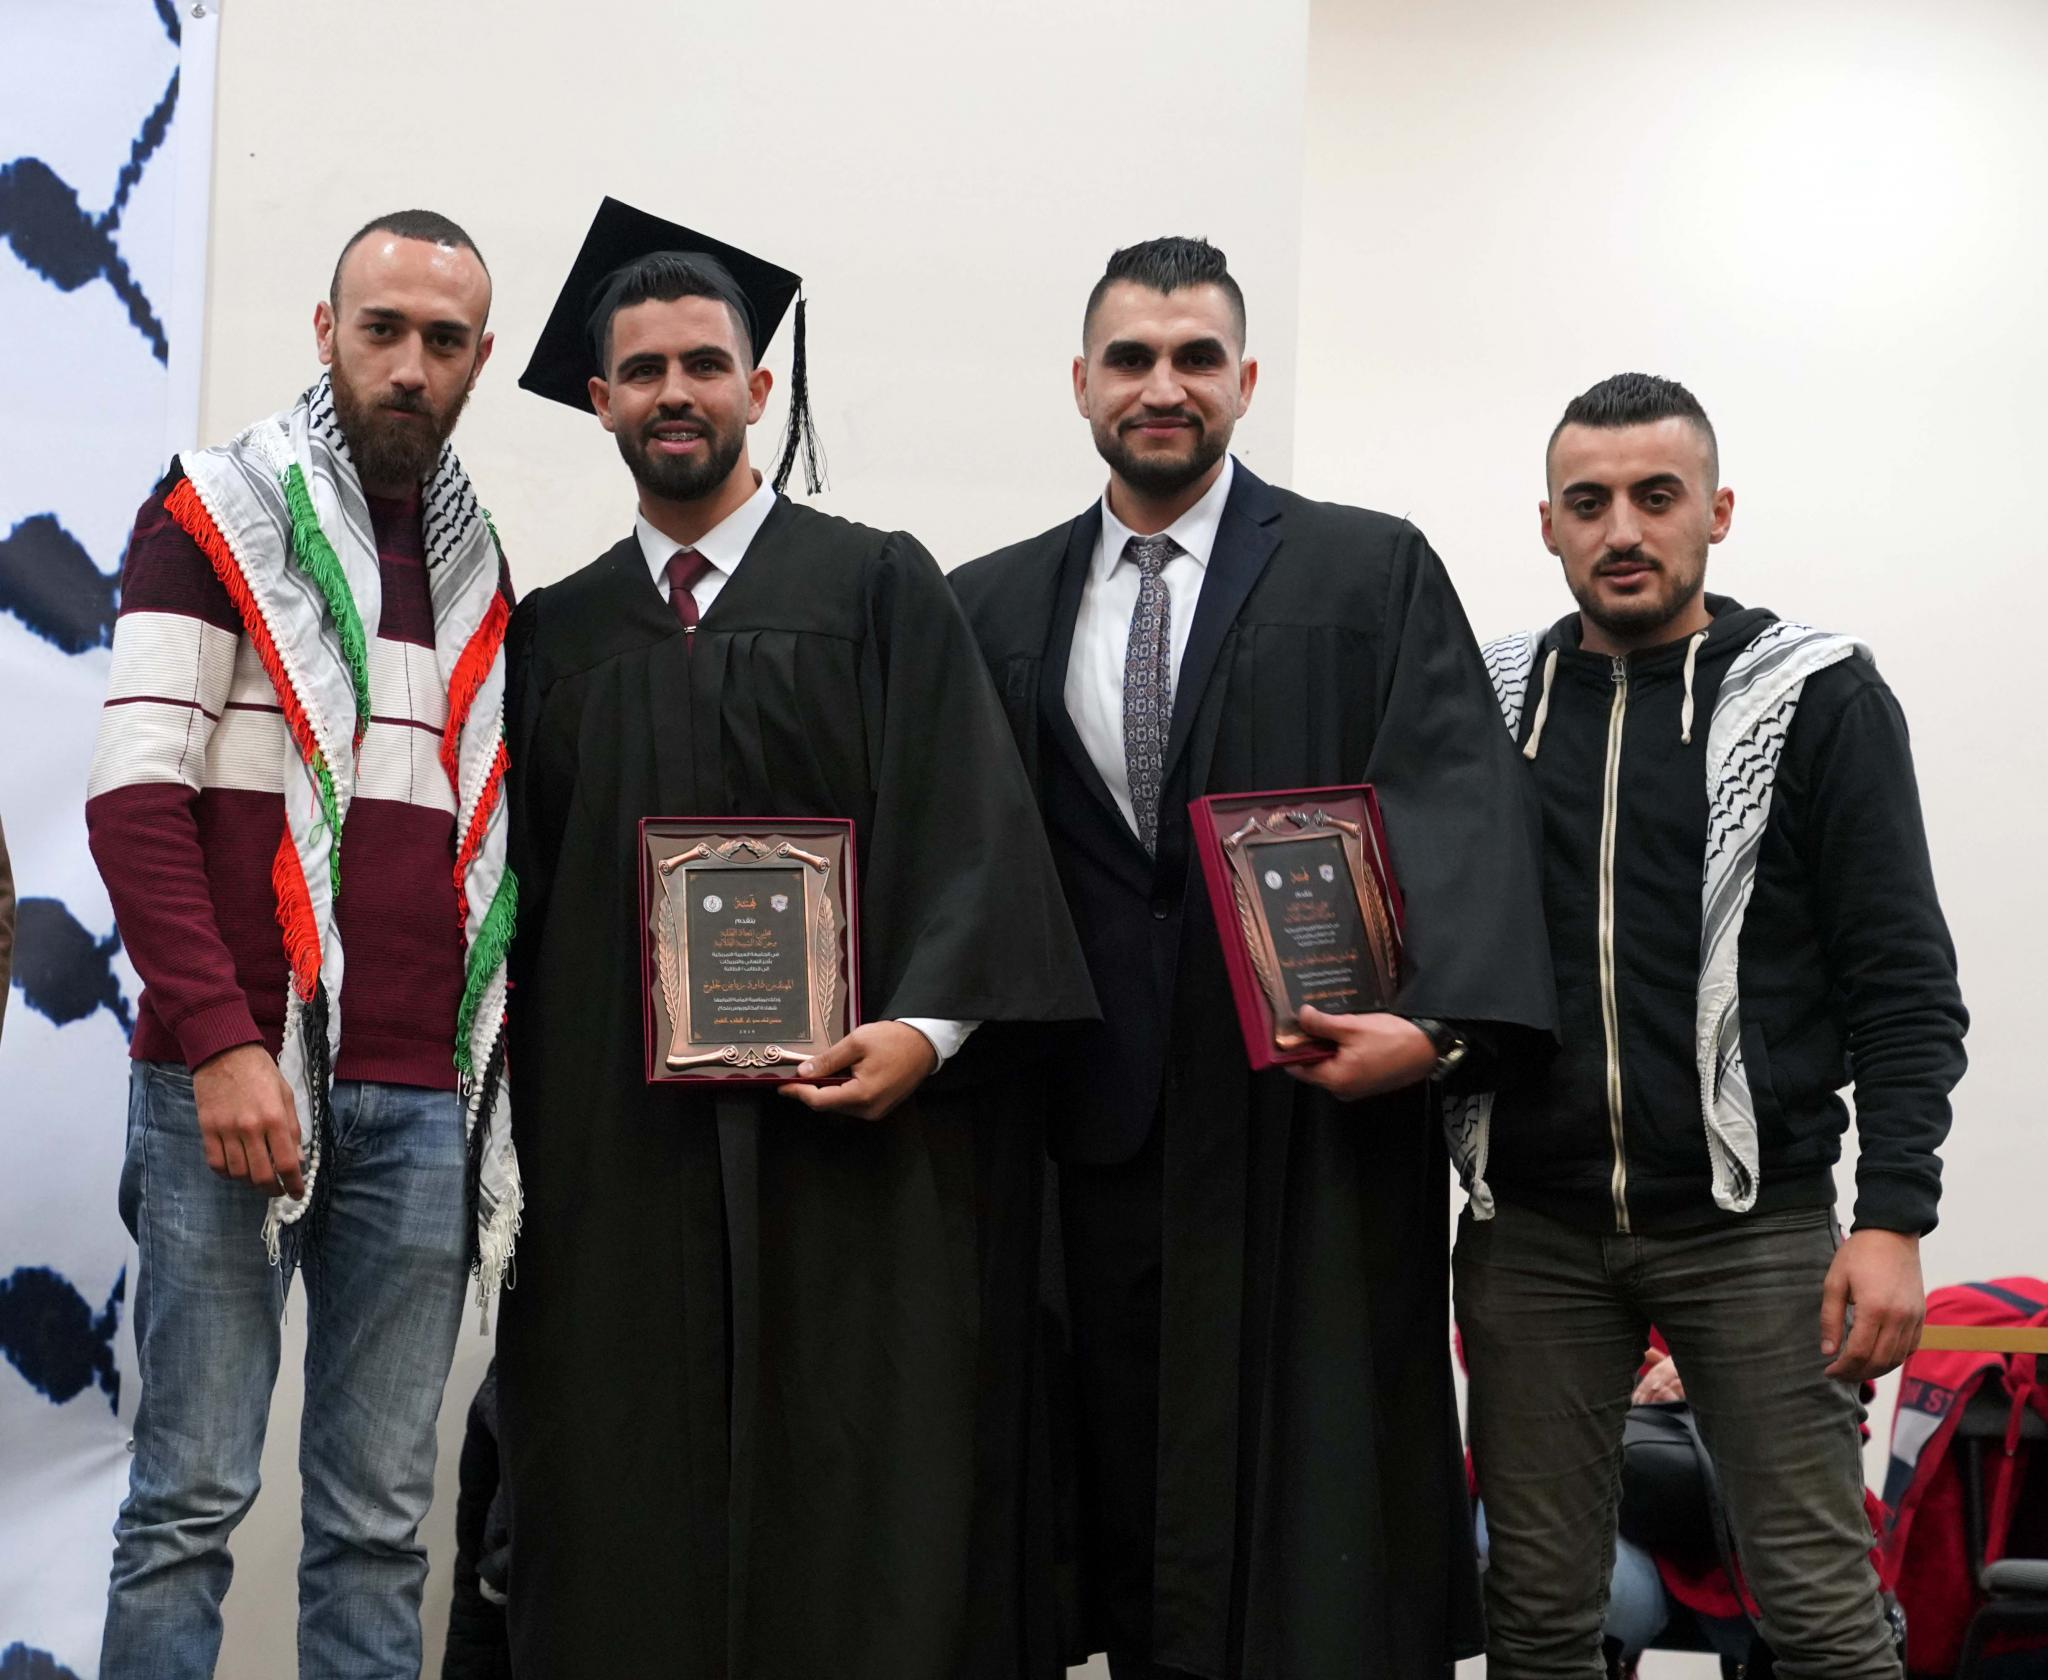 Part of the graduation ceremony